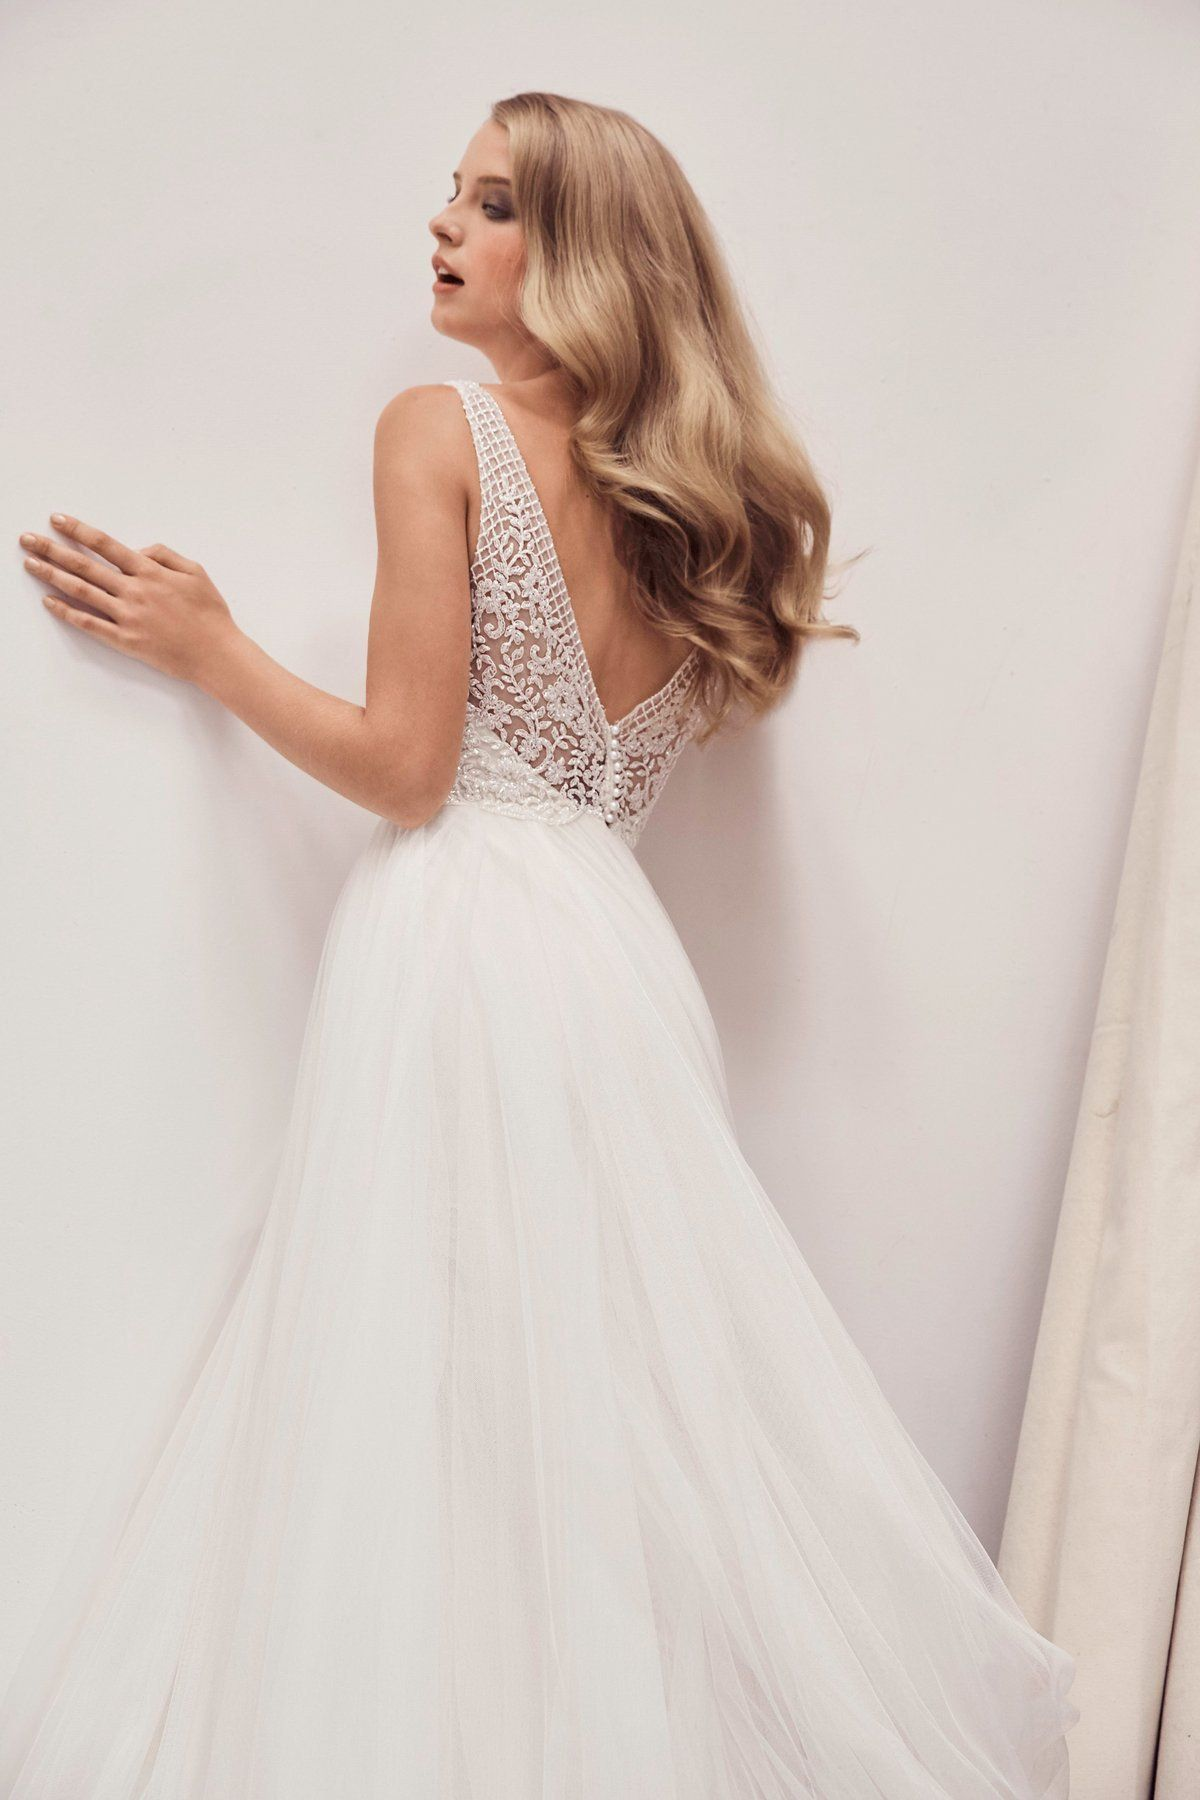 The Premier Bridal Stores In Fresno And San Diego California Page